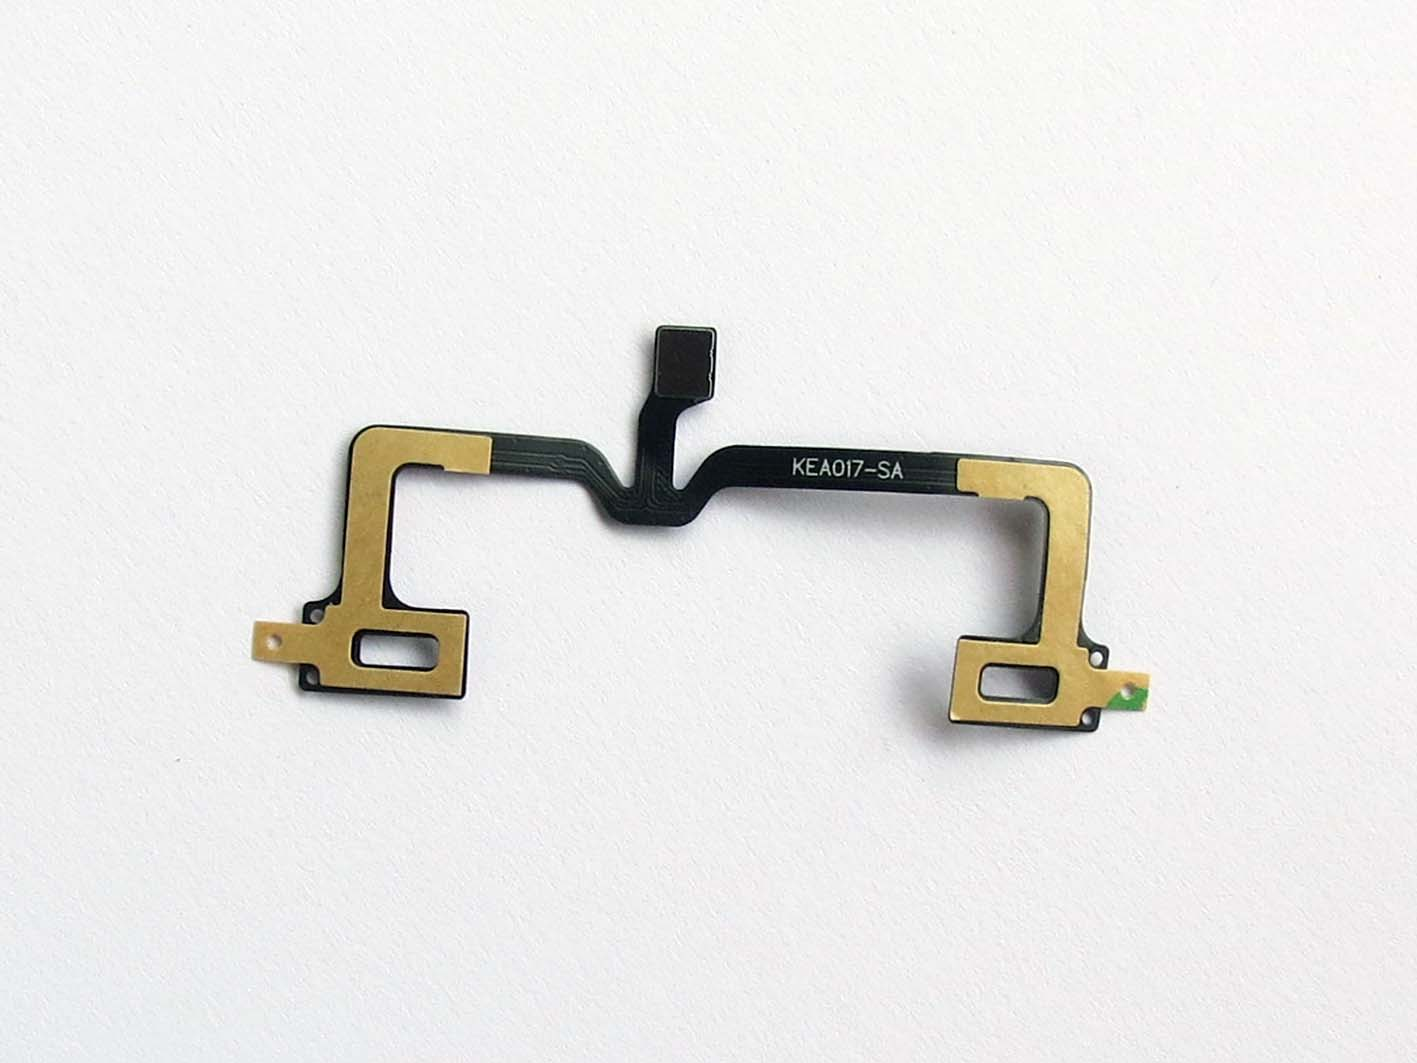 Light Proximity Distance Sensor Connector Flex Cable for Oneplus 3